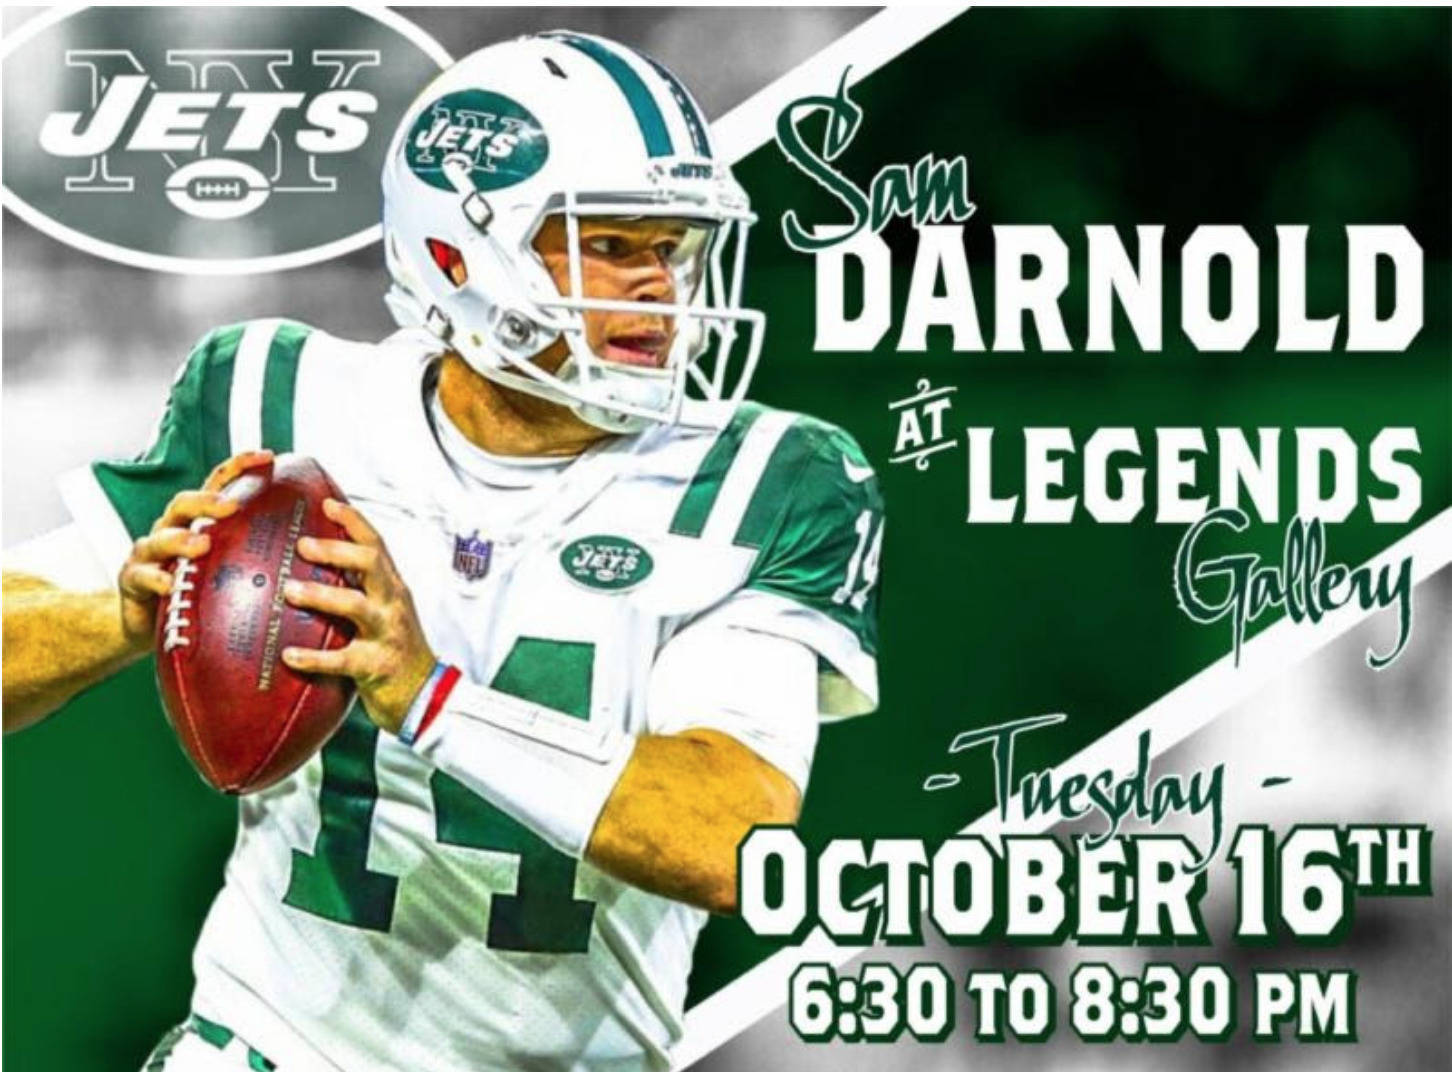 Jets Rookie Quarterback Sam Darnold to Appear in Chatham at Legends Gallery on Oct. 16